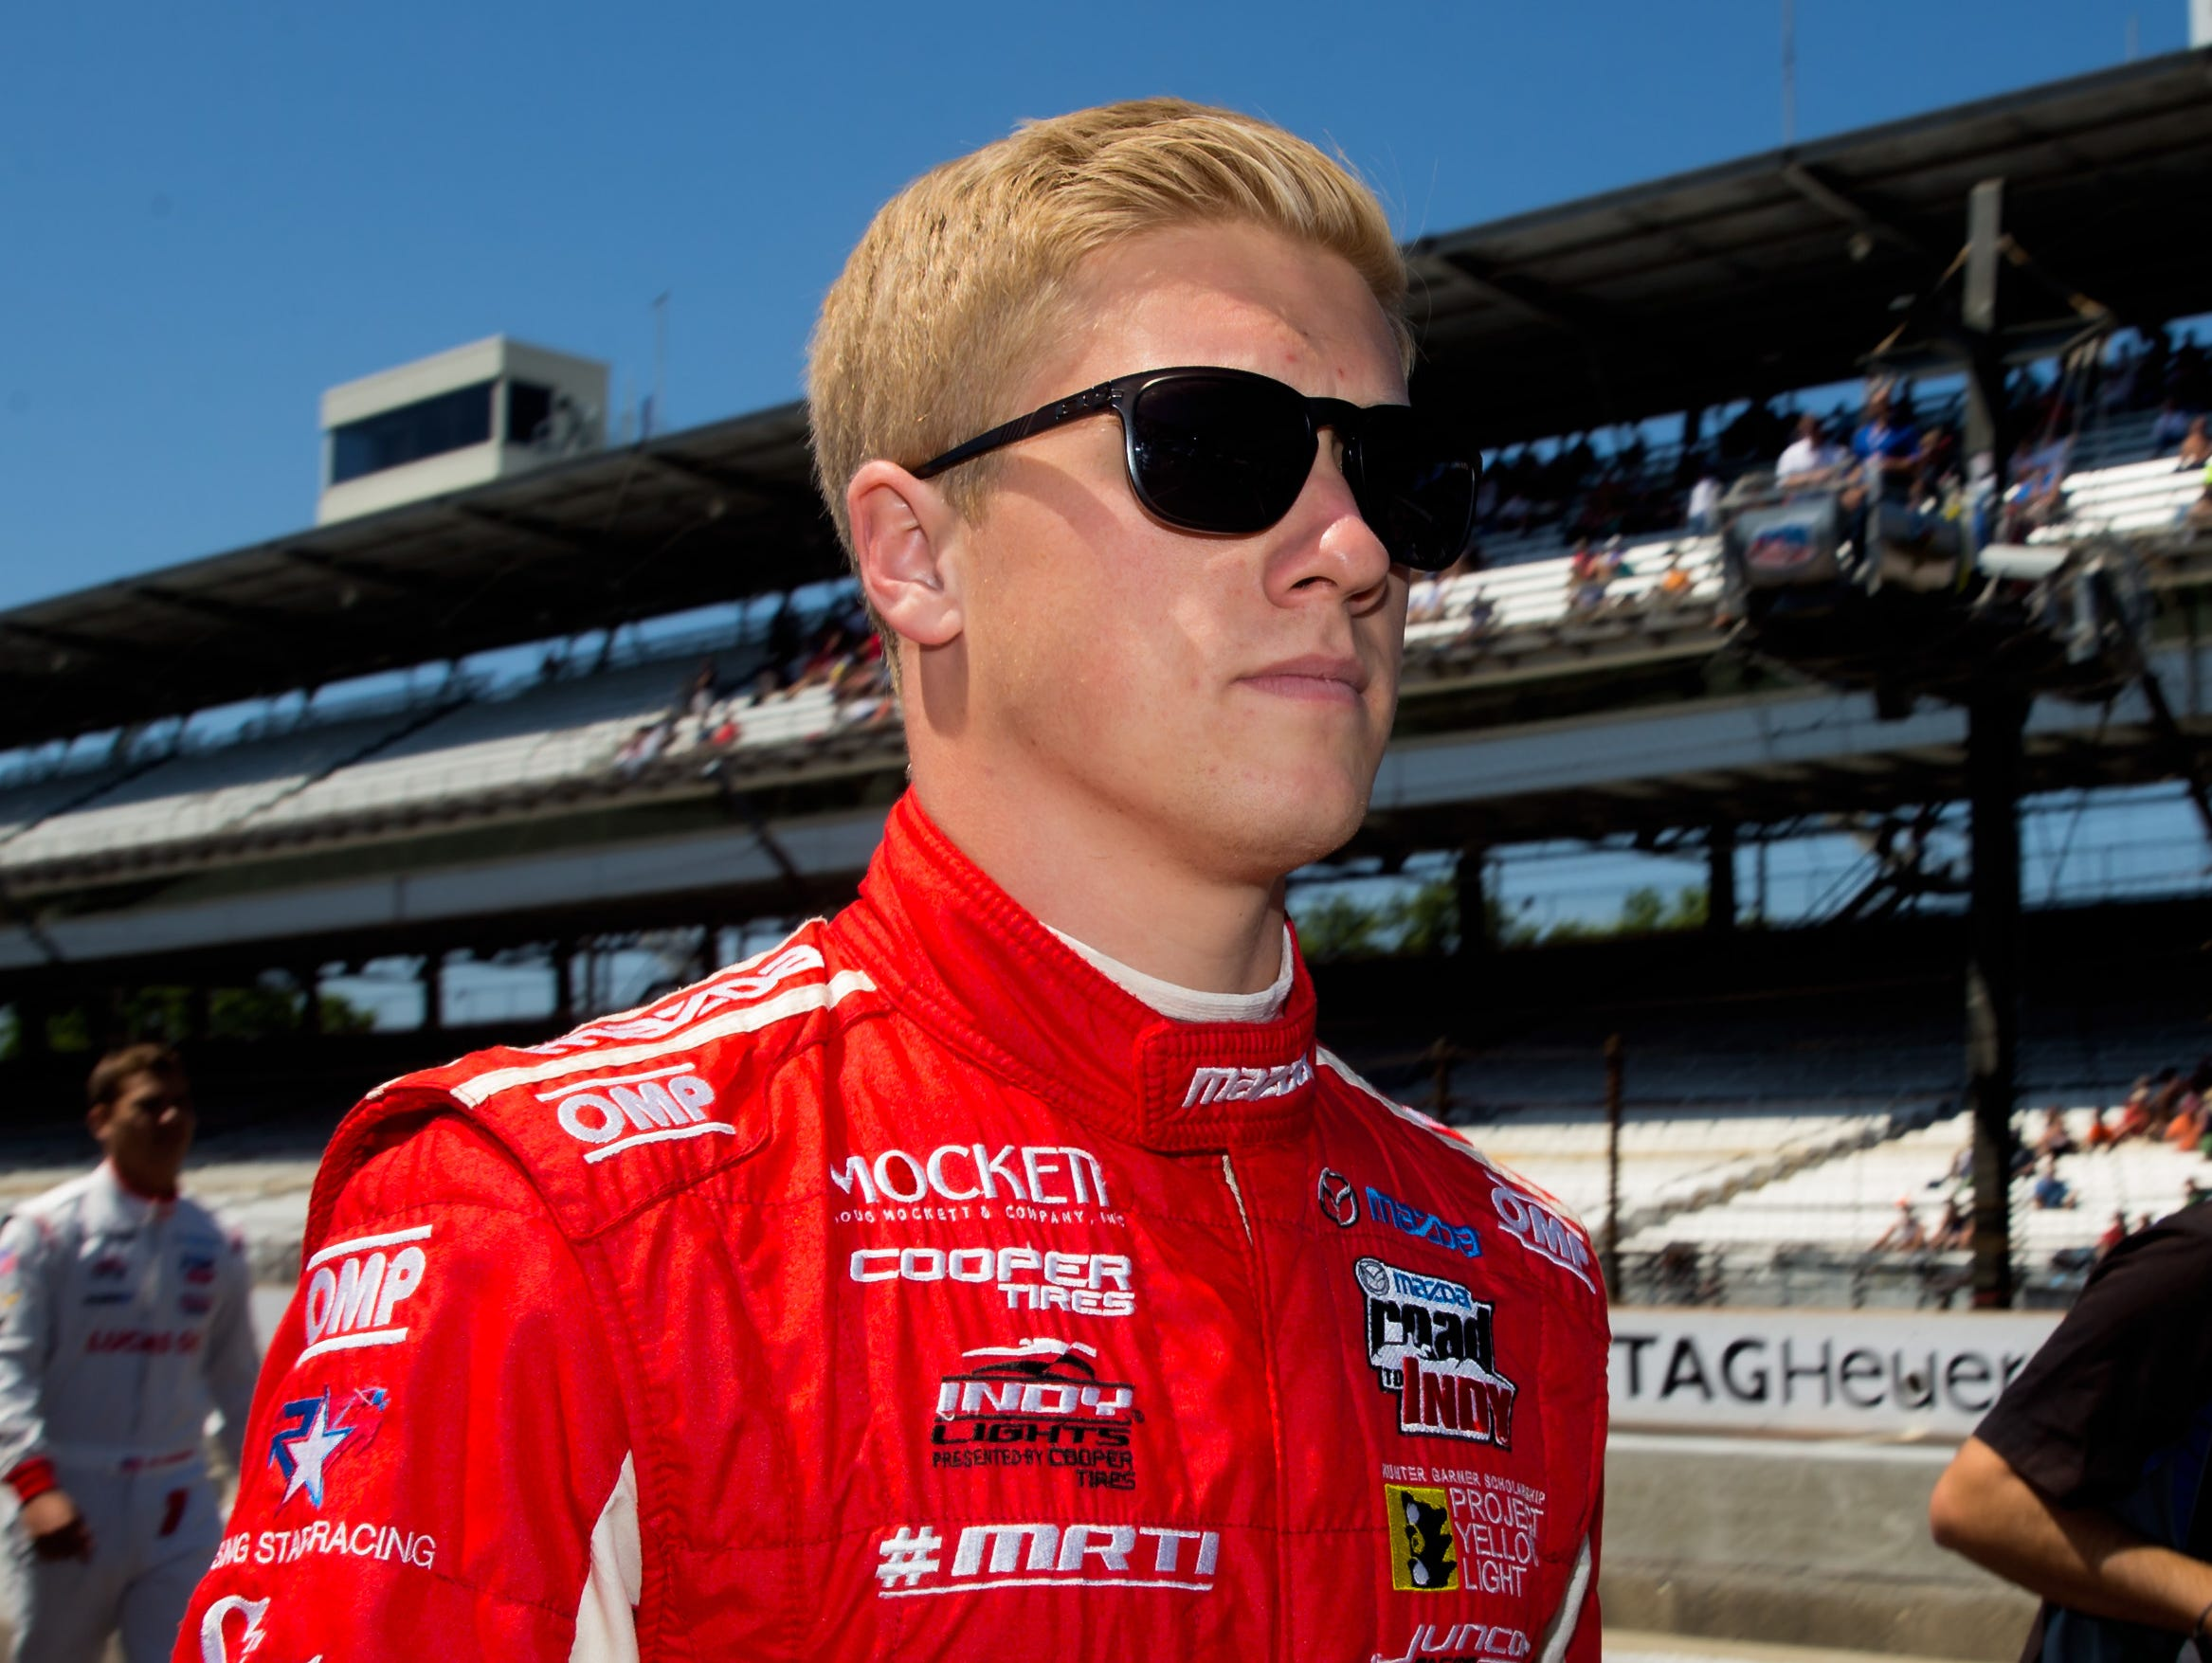 Indy Lights driver Spencer Pigot will get to show what he's got in the Big Show.